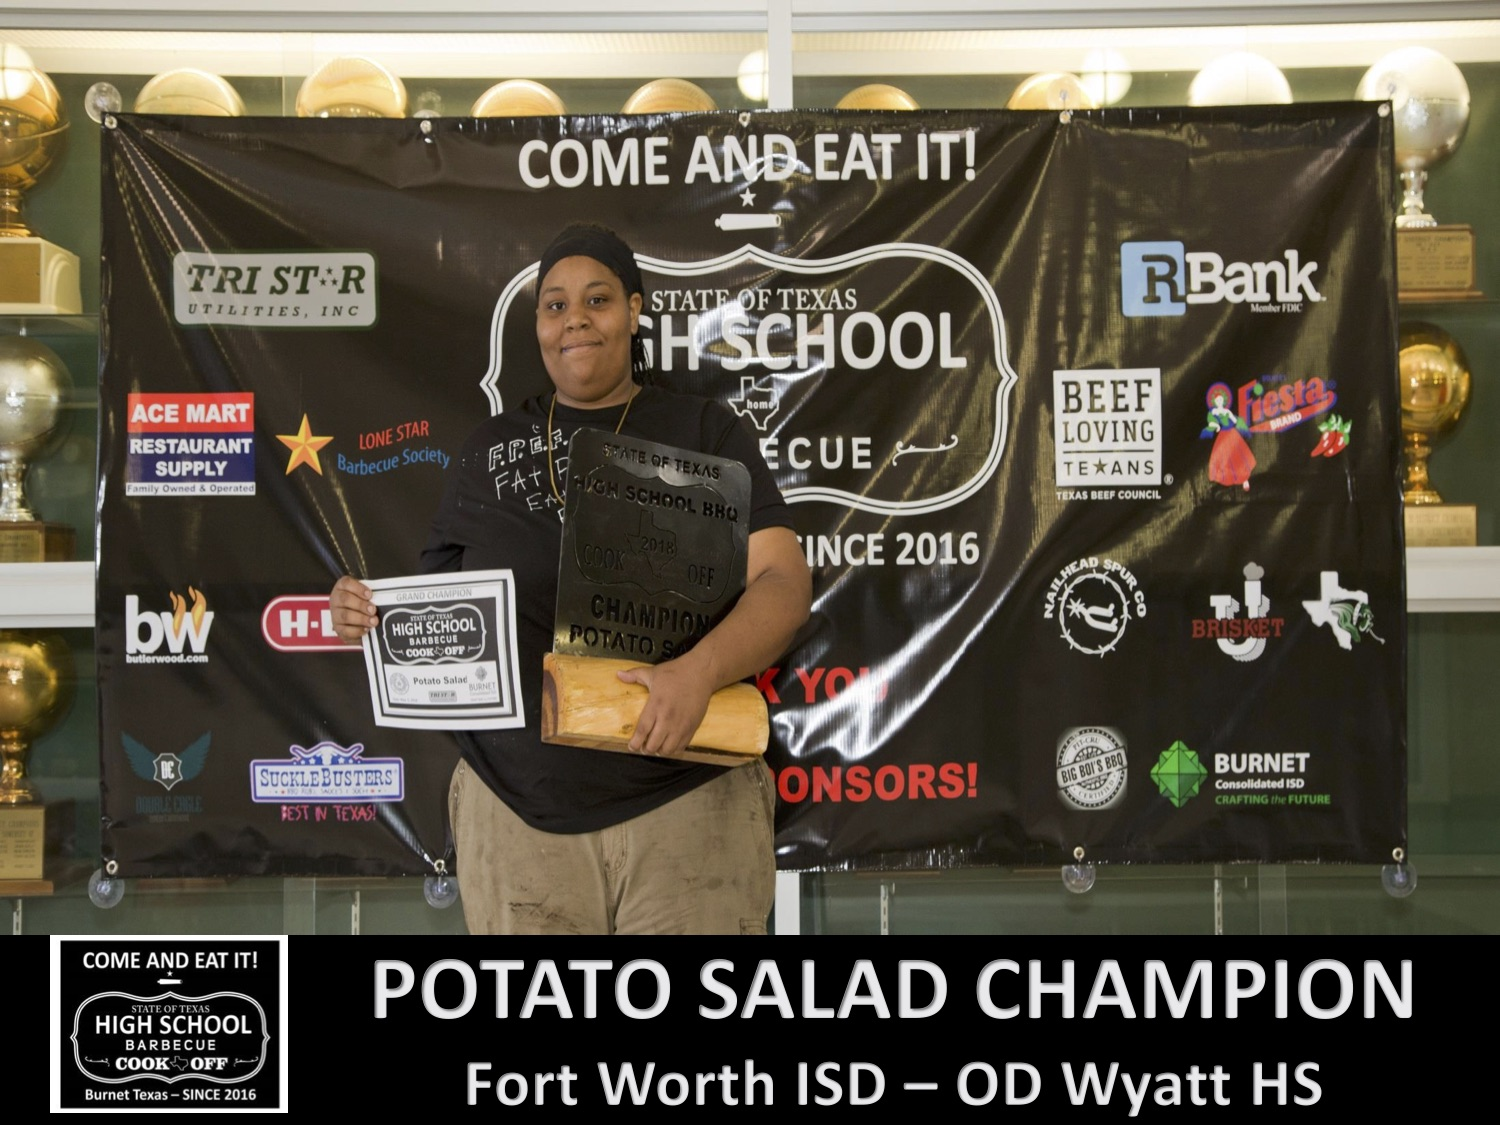 2018 Texas HS potato salad